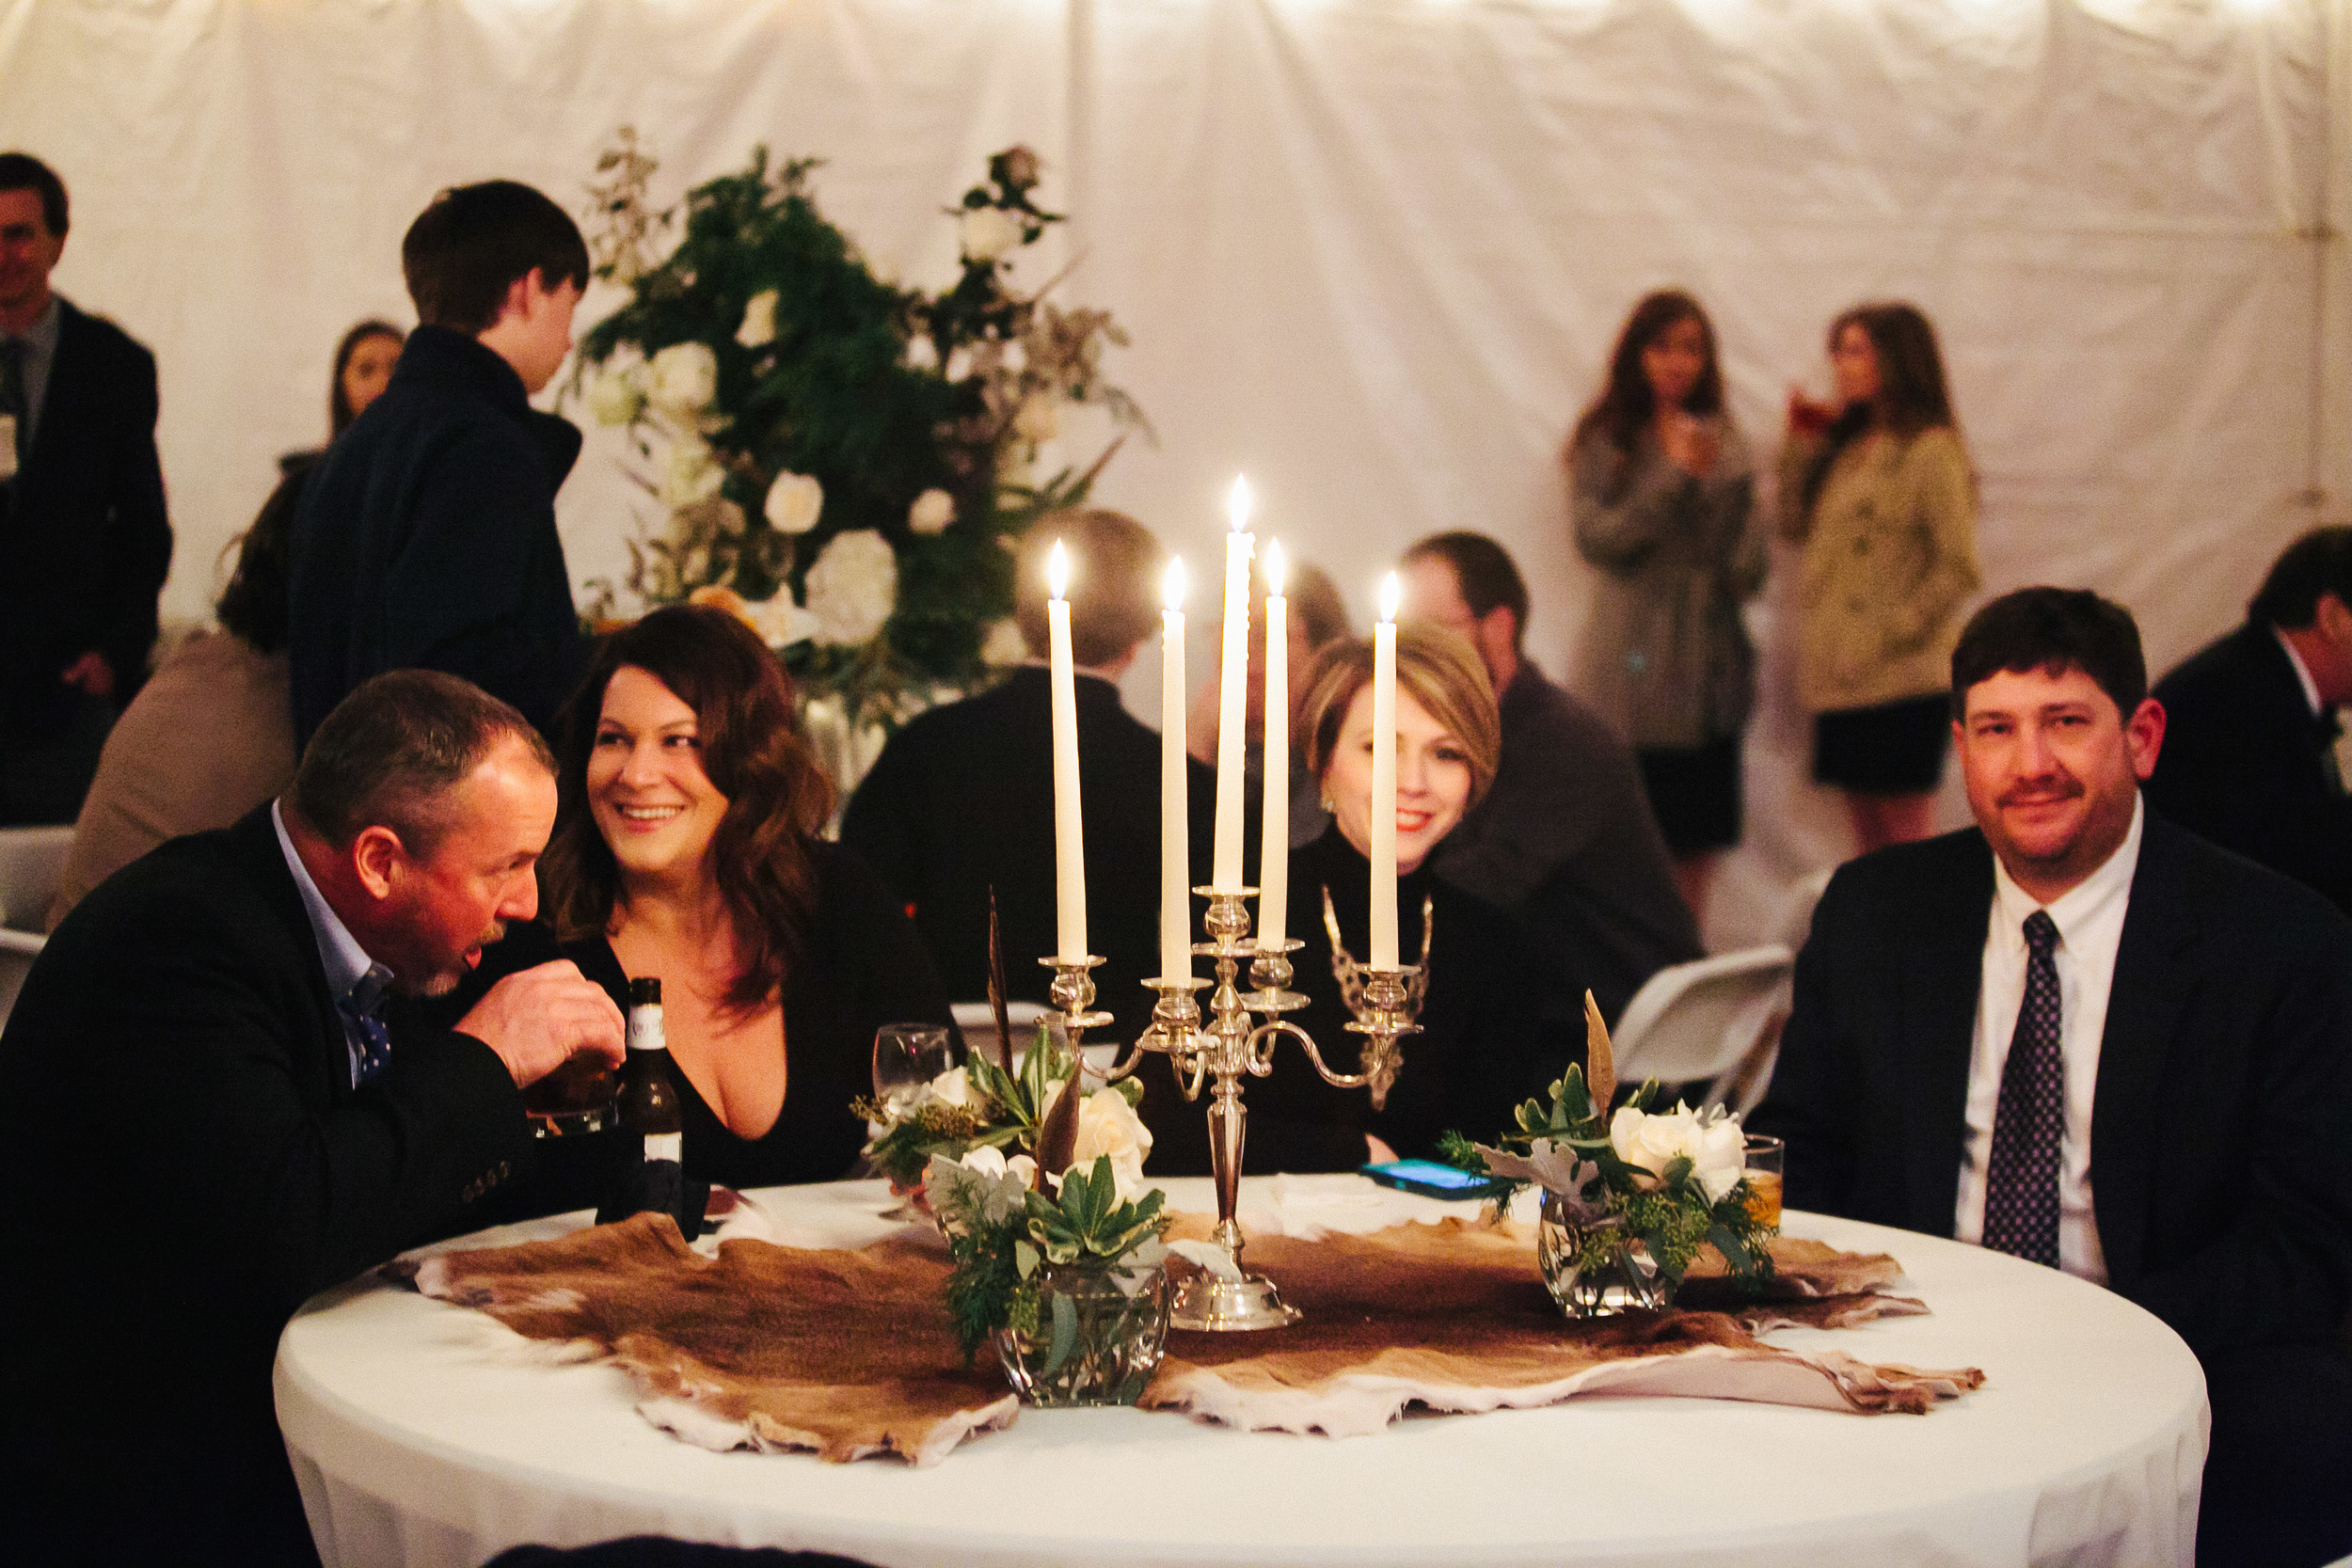 Lush centerpieces of white roses, hydrangeas, spanish moss and pheasant feathers, turtle shells, animal fur table runners and antique candelabras